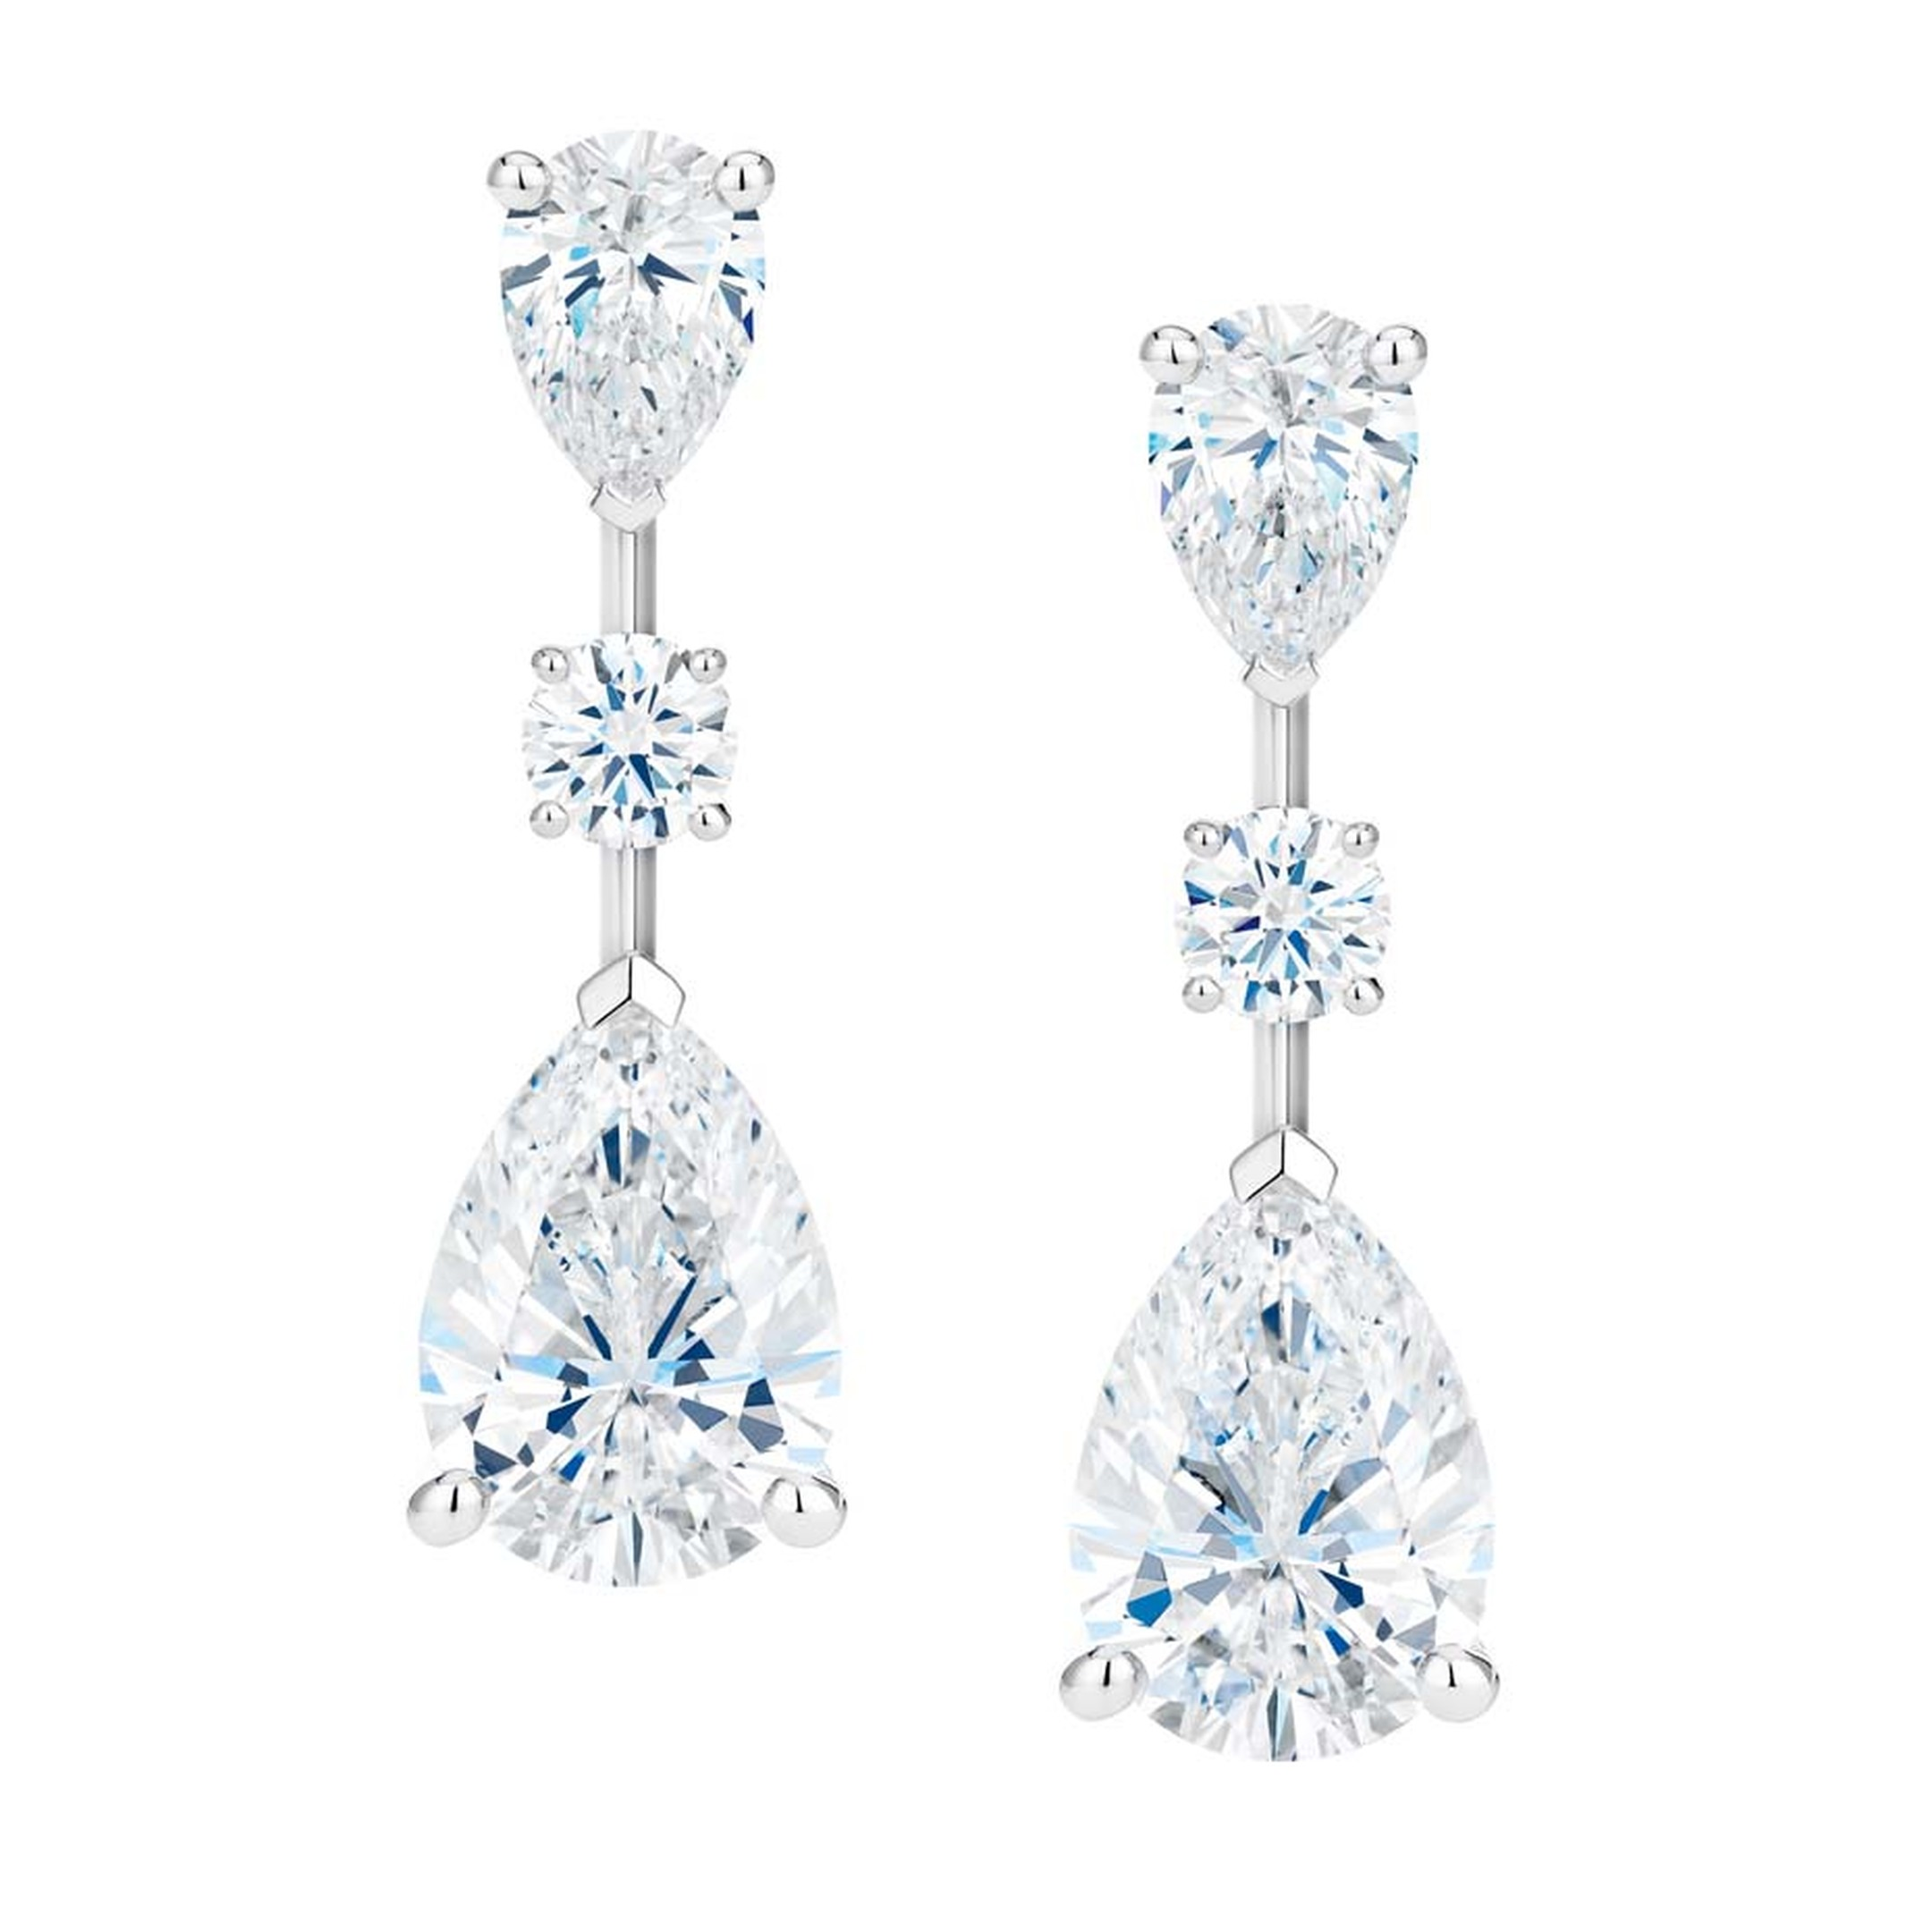 De Beers classic diamond solitaire earrings with detachable diamond drops from the new Drops of Light collection.